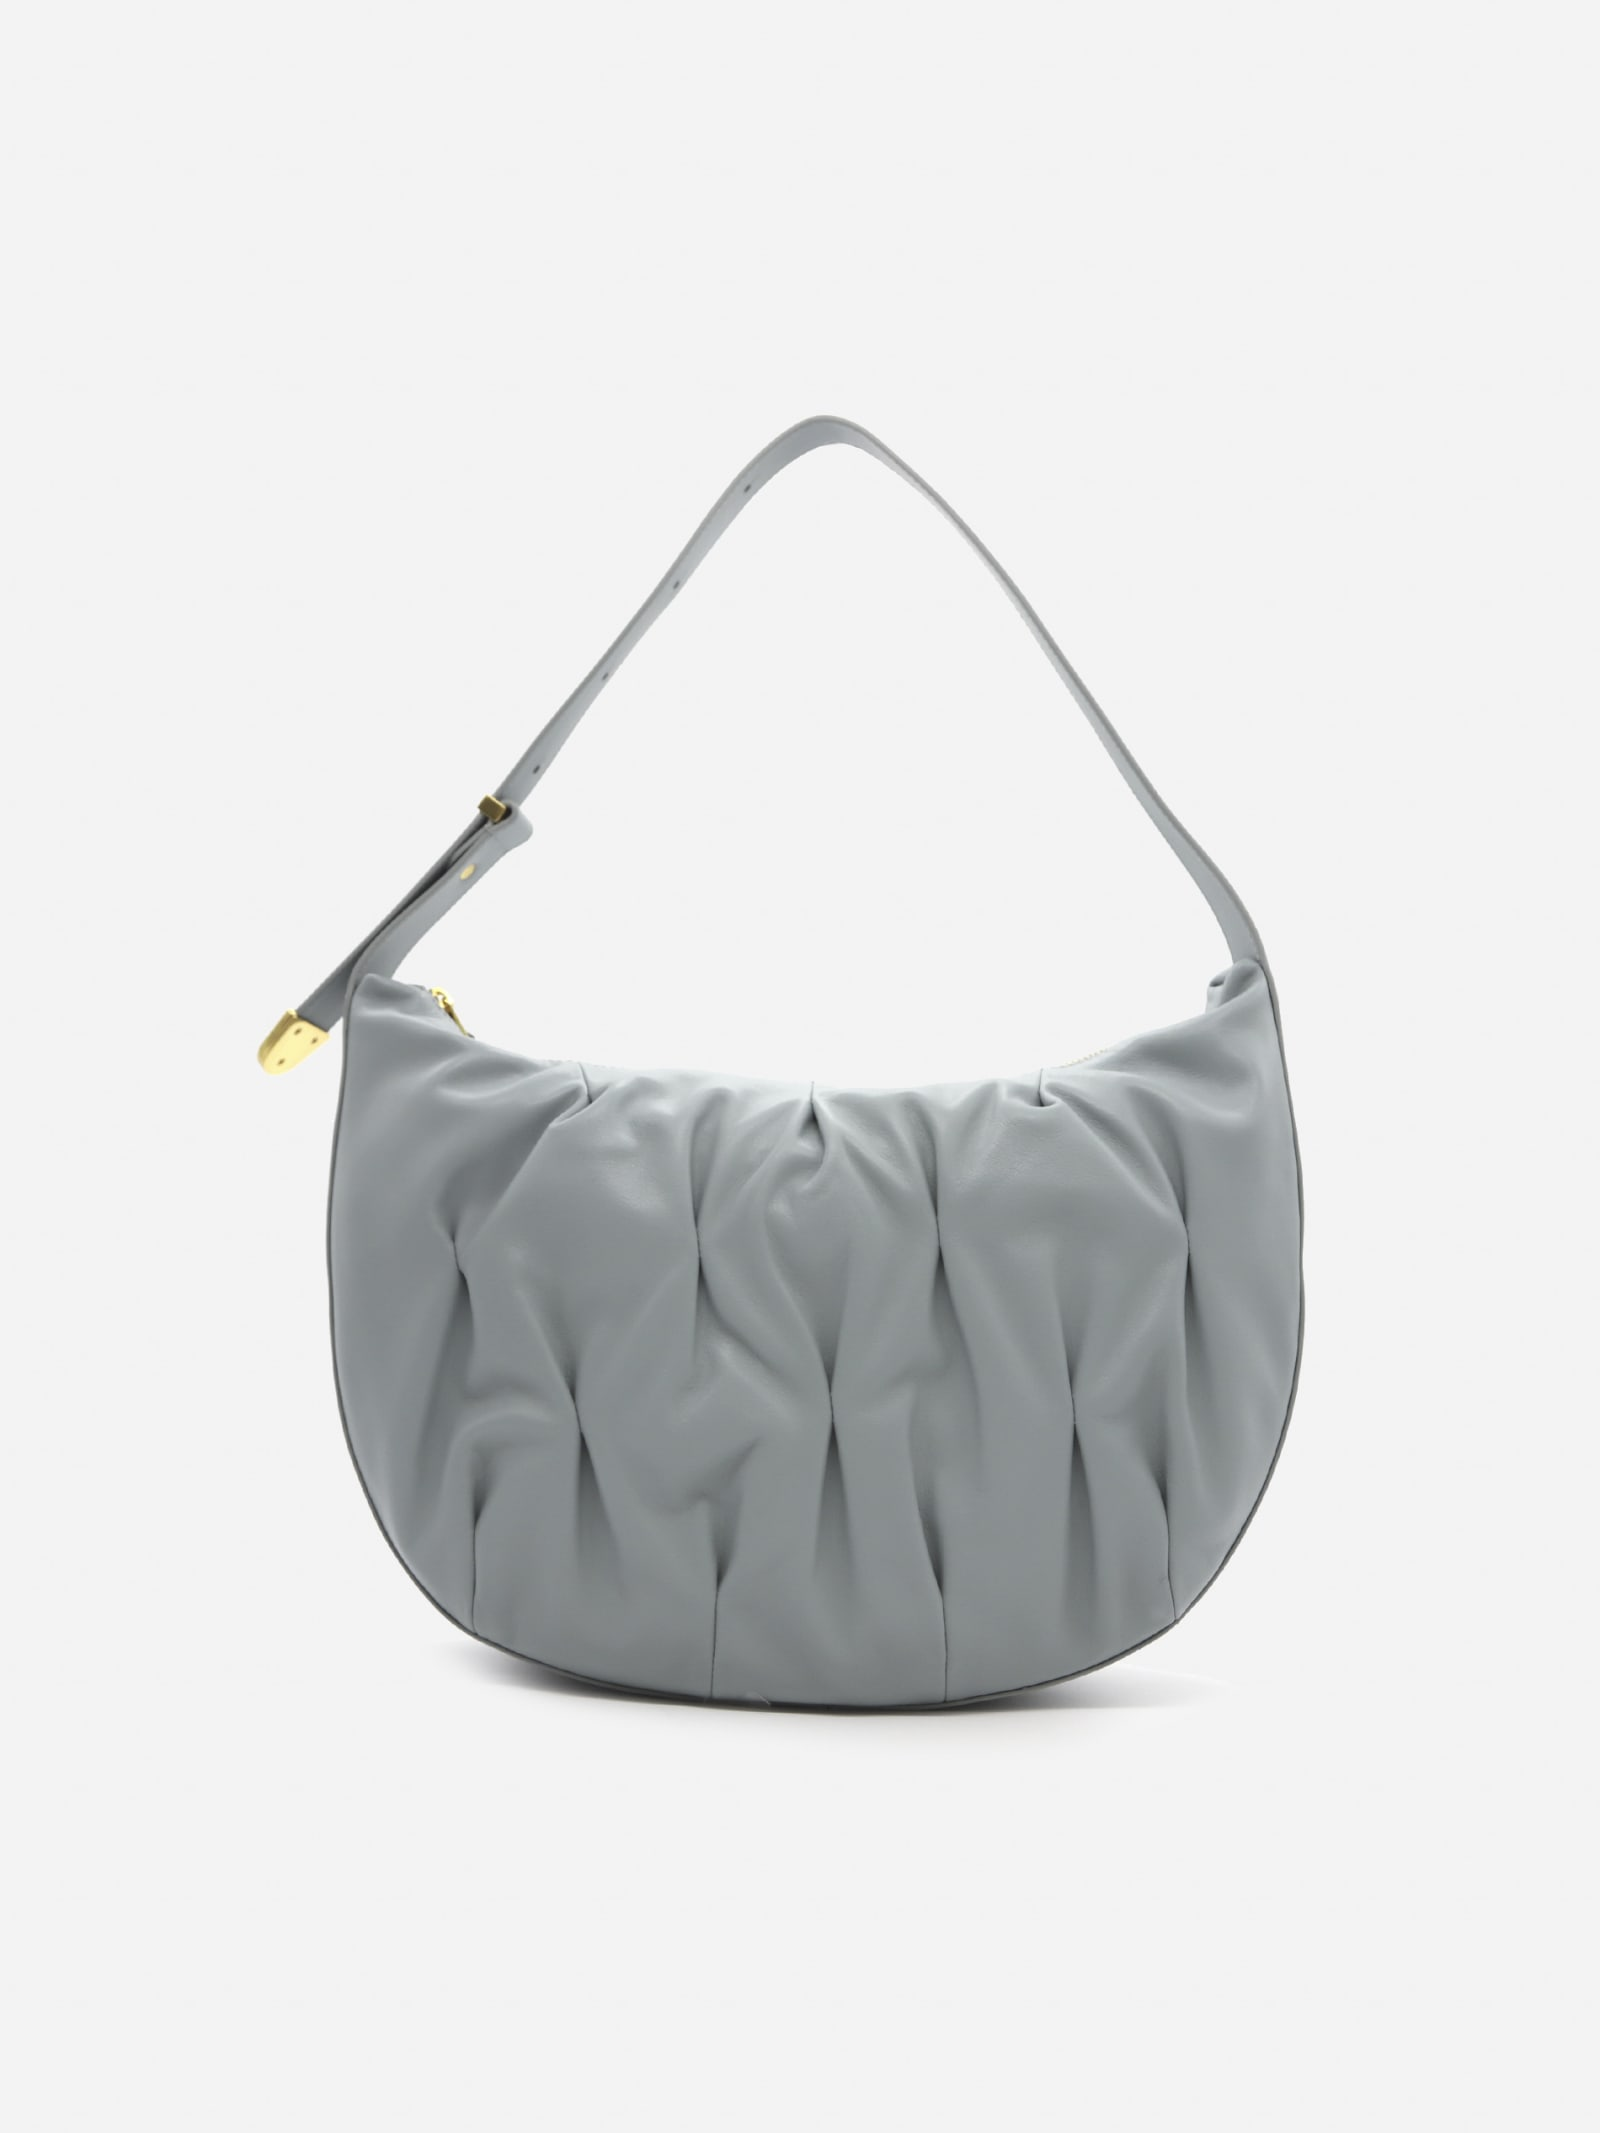 Marquise Goodie Leather Shoulder Bag